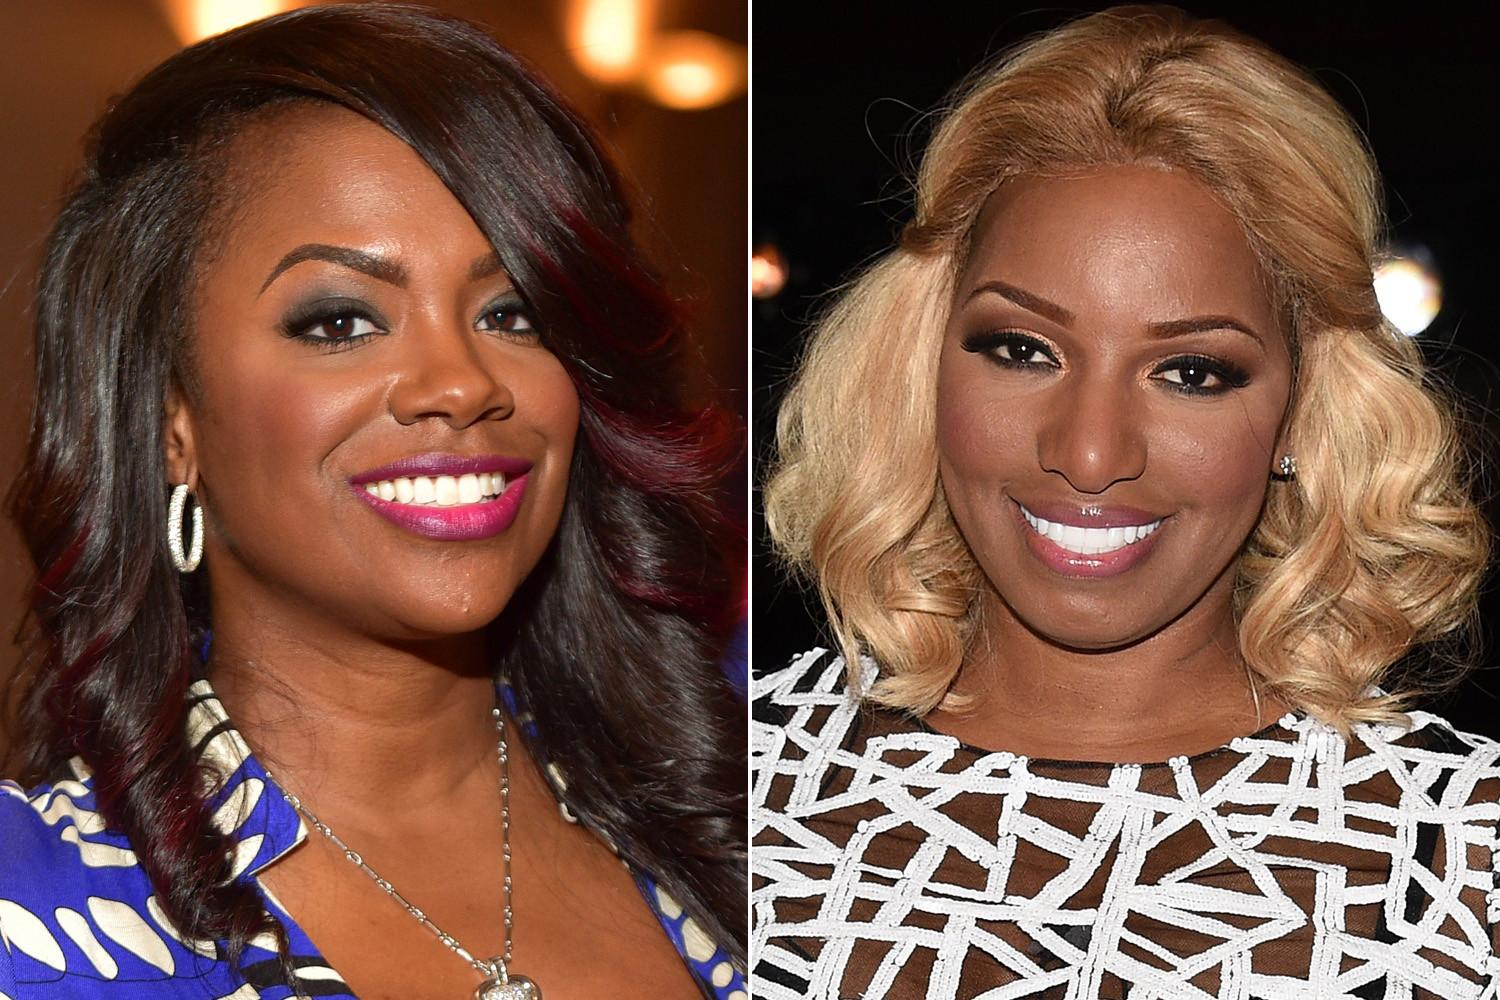 Kandi Burruss And NeNe Leakes Support Each Other's Businesses Despite The Recent Drama - See The Video And Kandi's Message